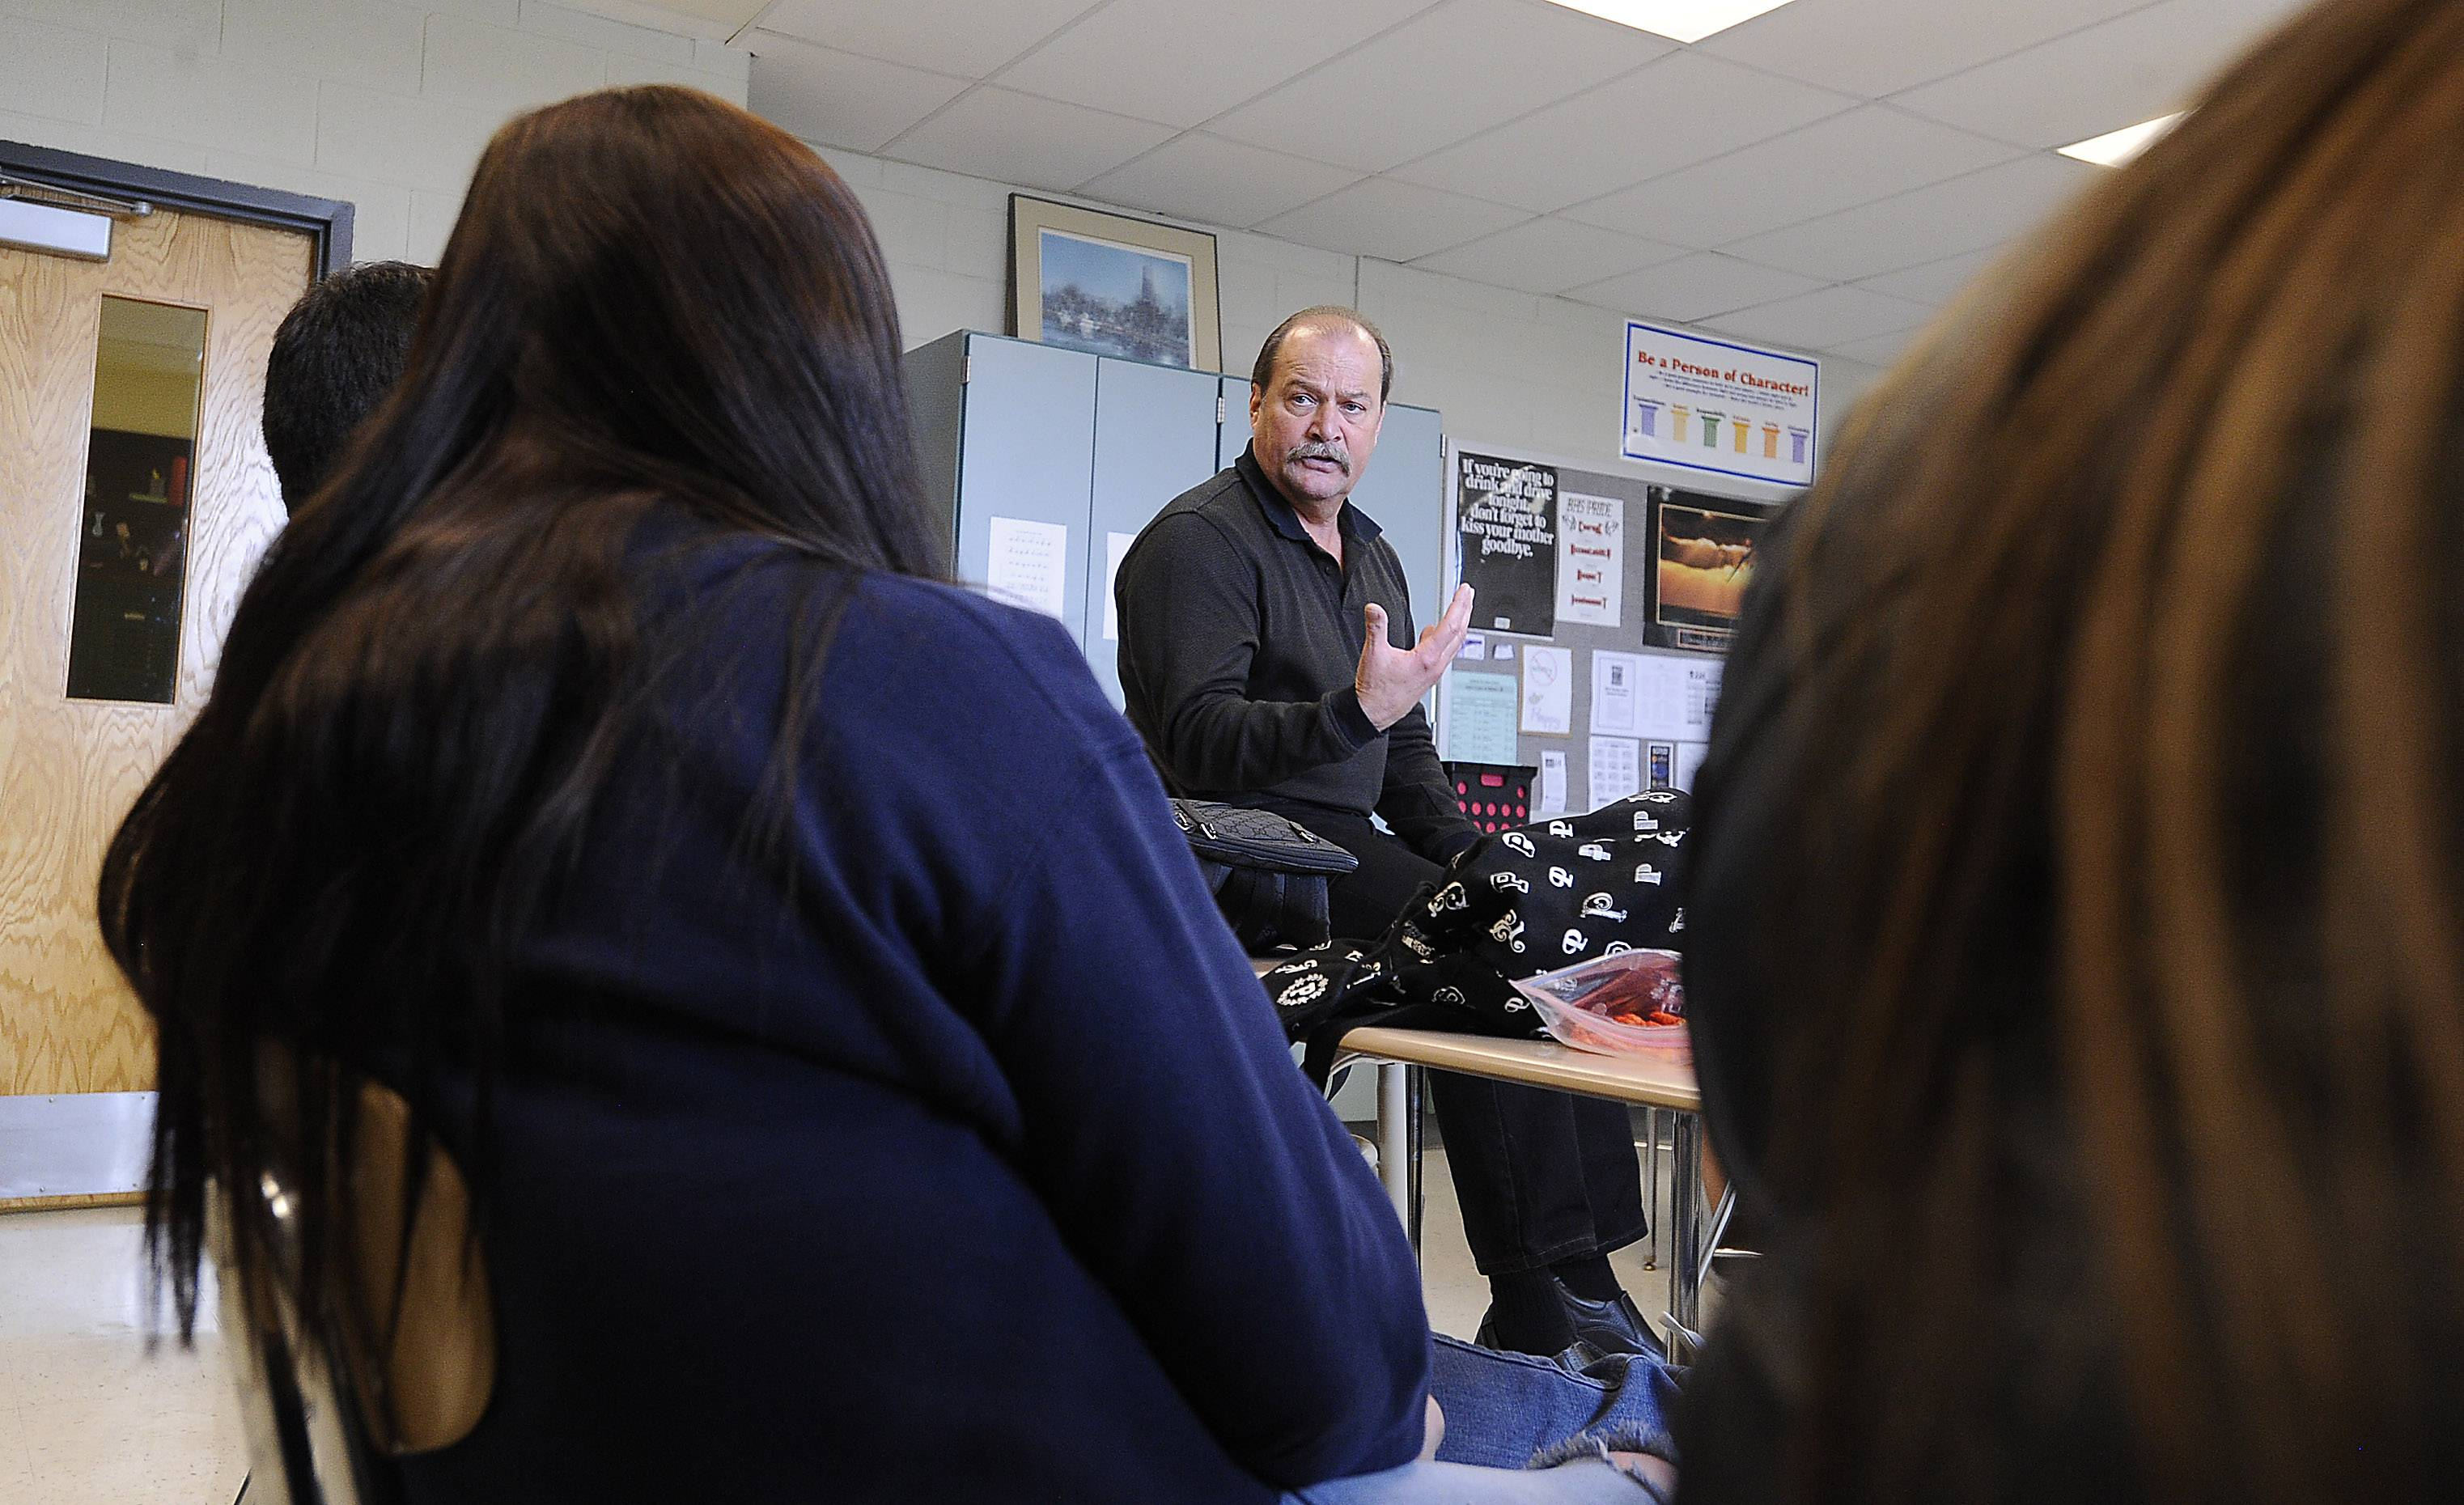 Bill Palmer teaches his Resources in Interpersonal Communications class at Barrington High School. Palmer works with some students from the time they are freshmen through graduation.